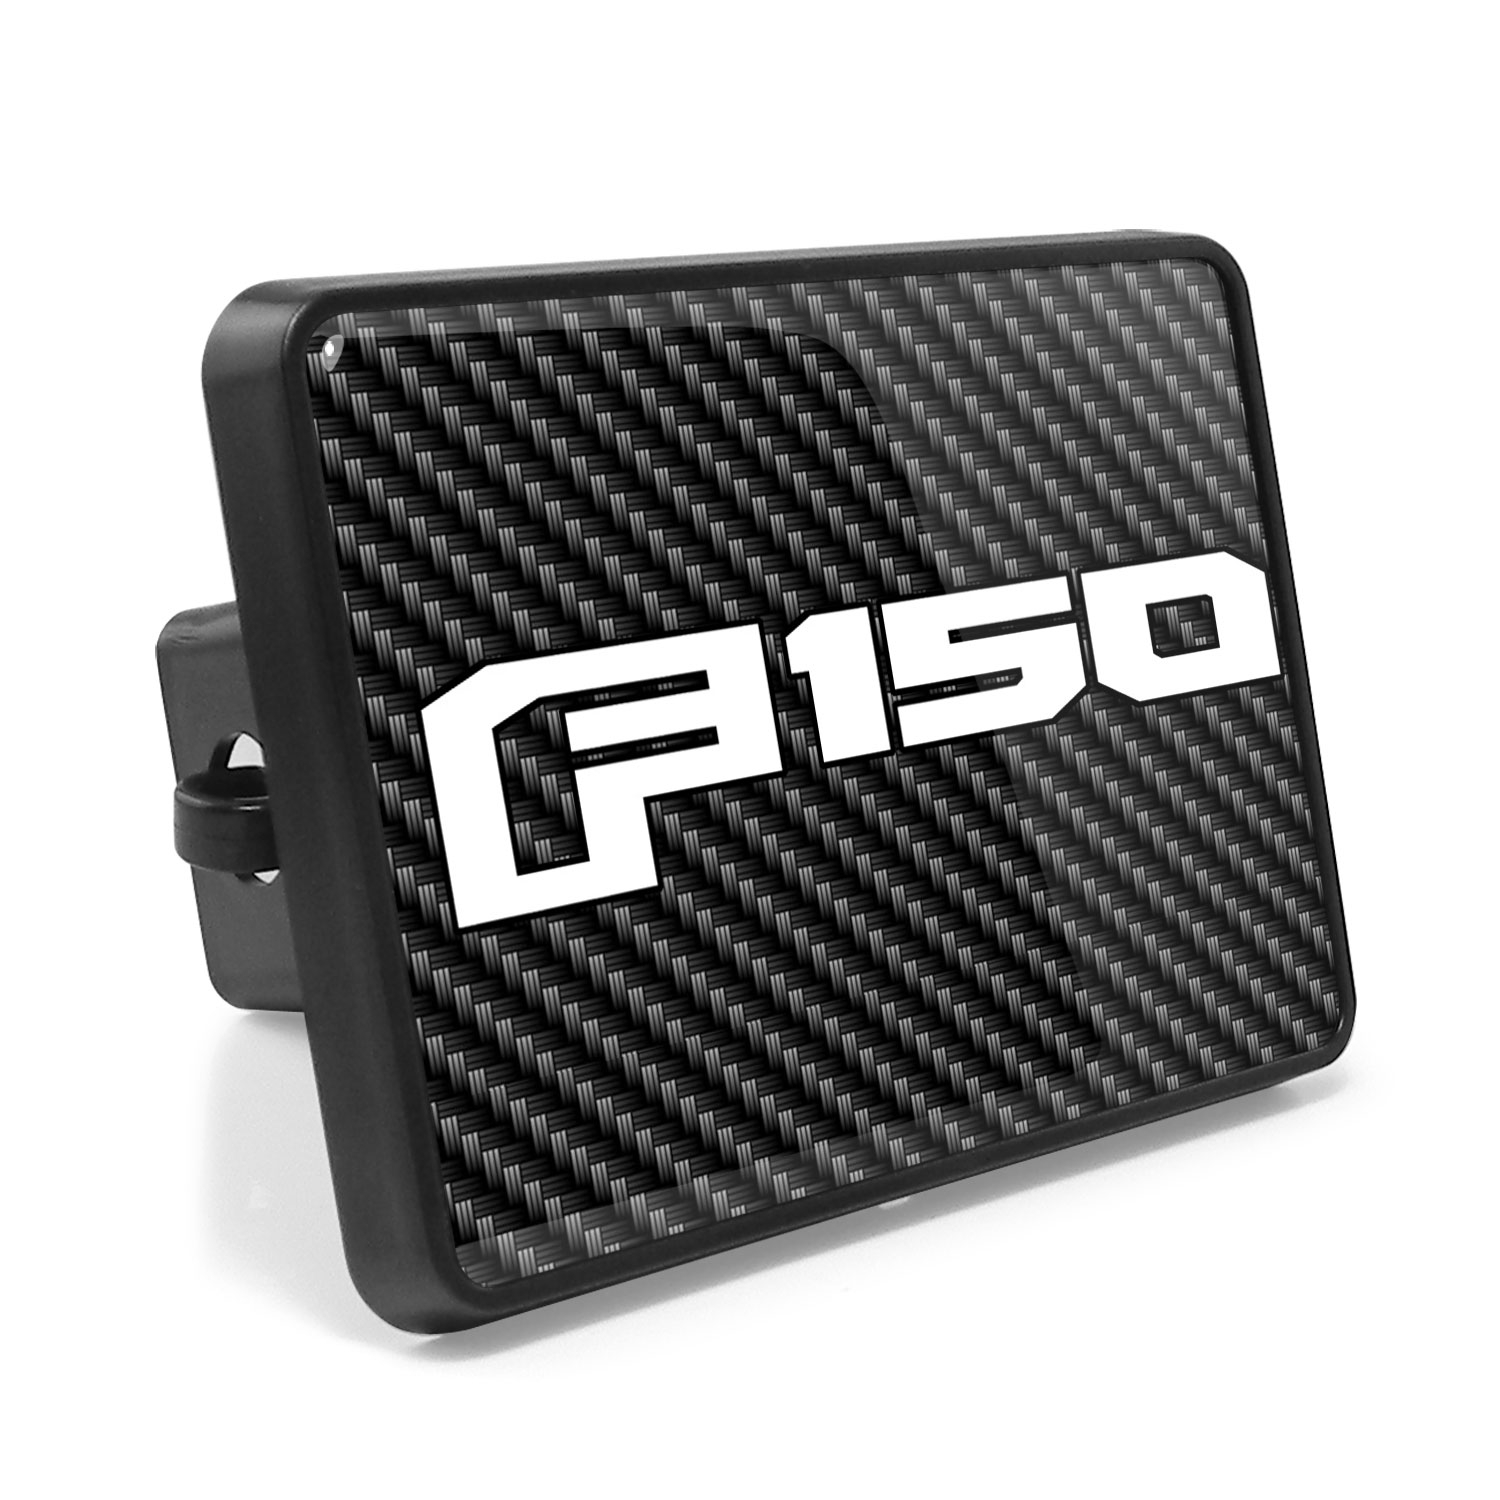 Ford F-150 2015-2017 Carbon Fiber Look UV Graphic Metal Plate on ABS Plastic 2 inch Tow Hitch Cover